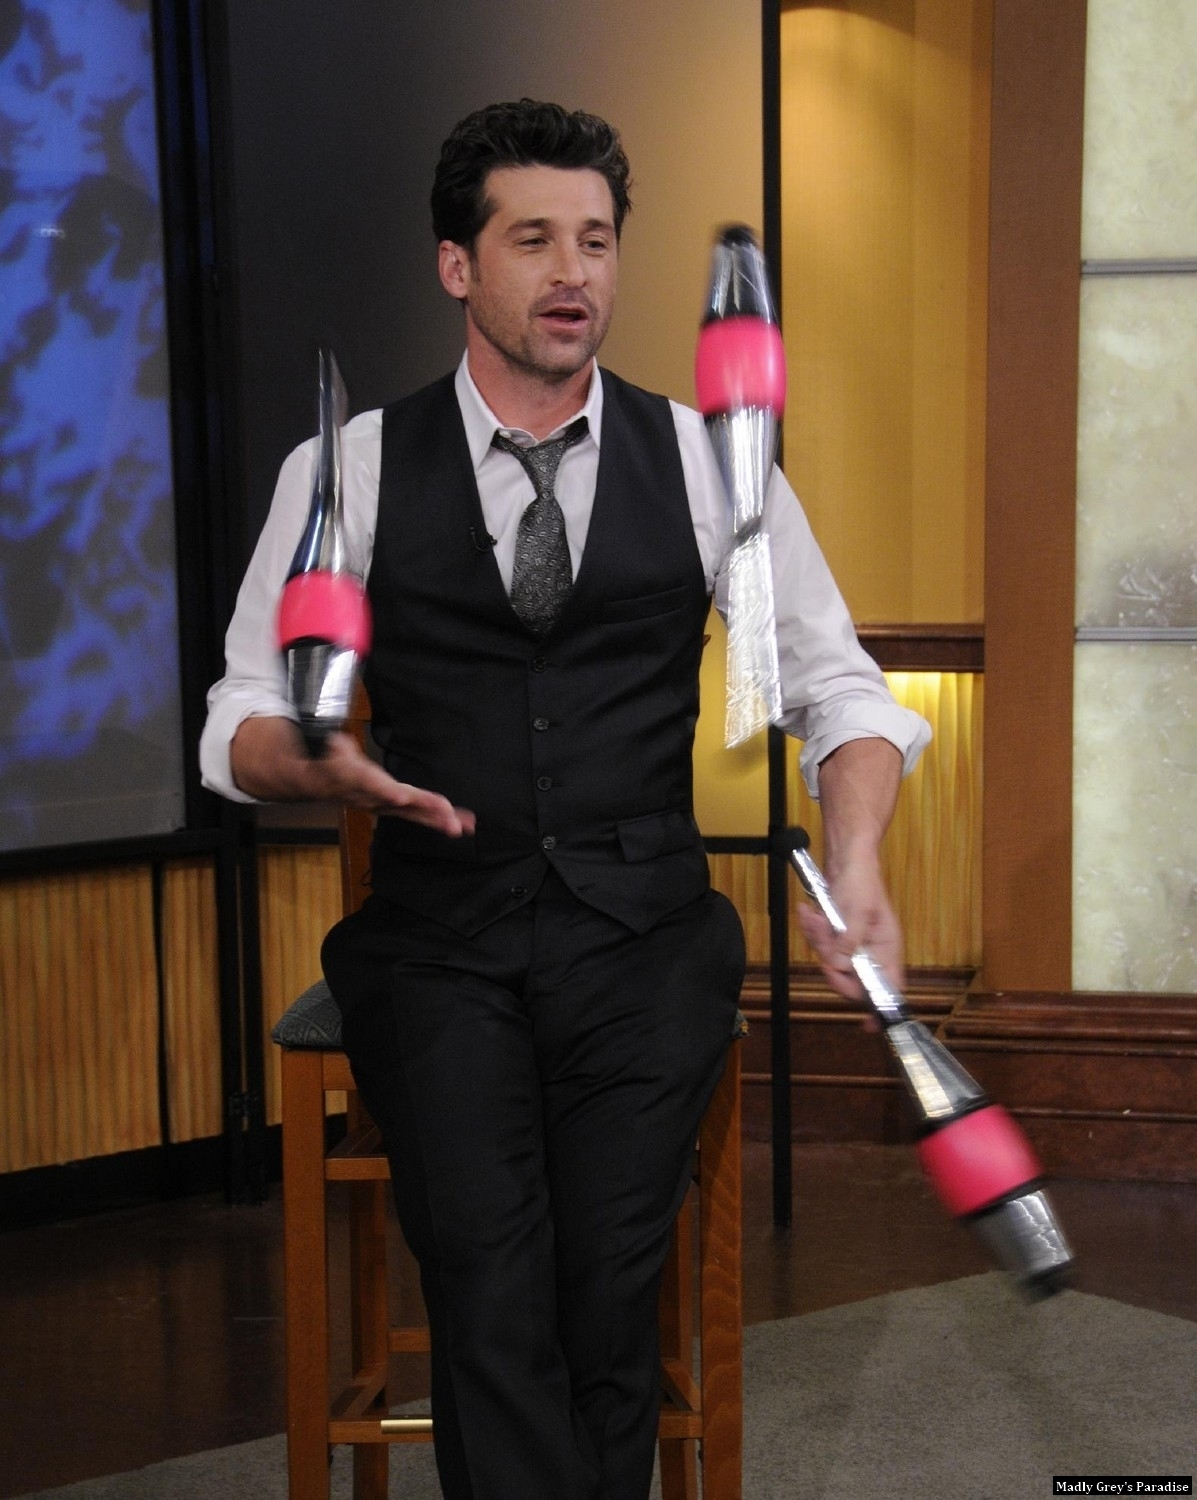 Patrick Dempsey on Good Morning America - patrick-dempsey photo